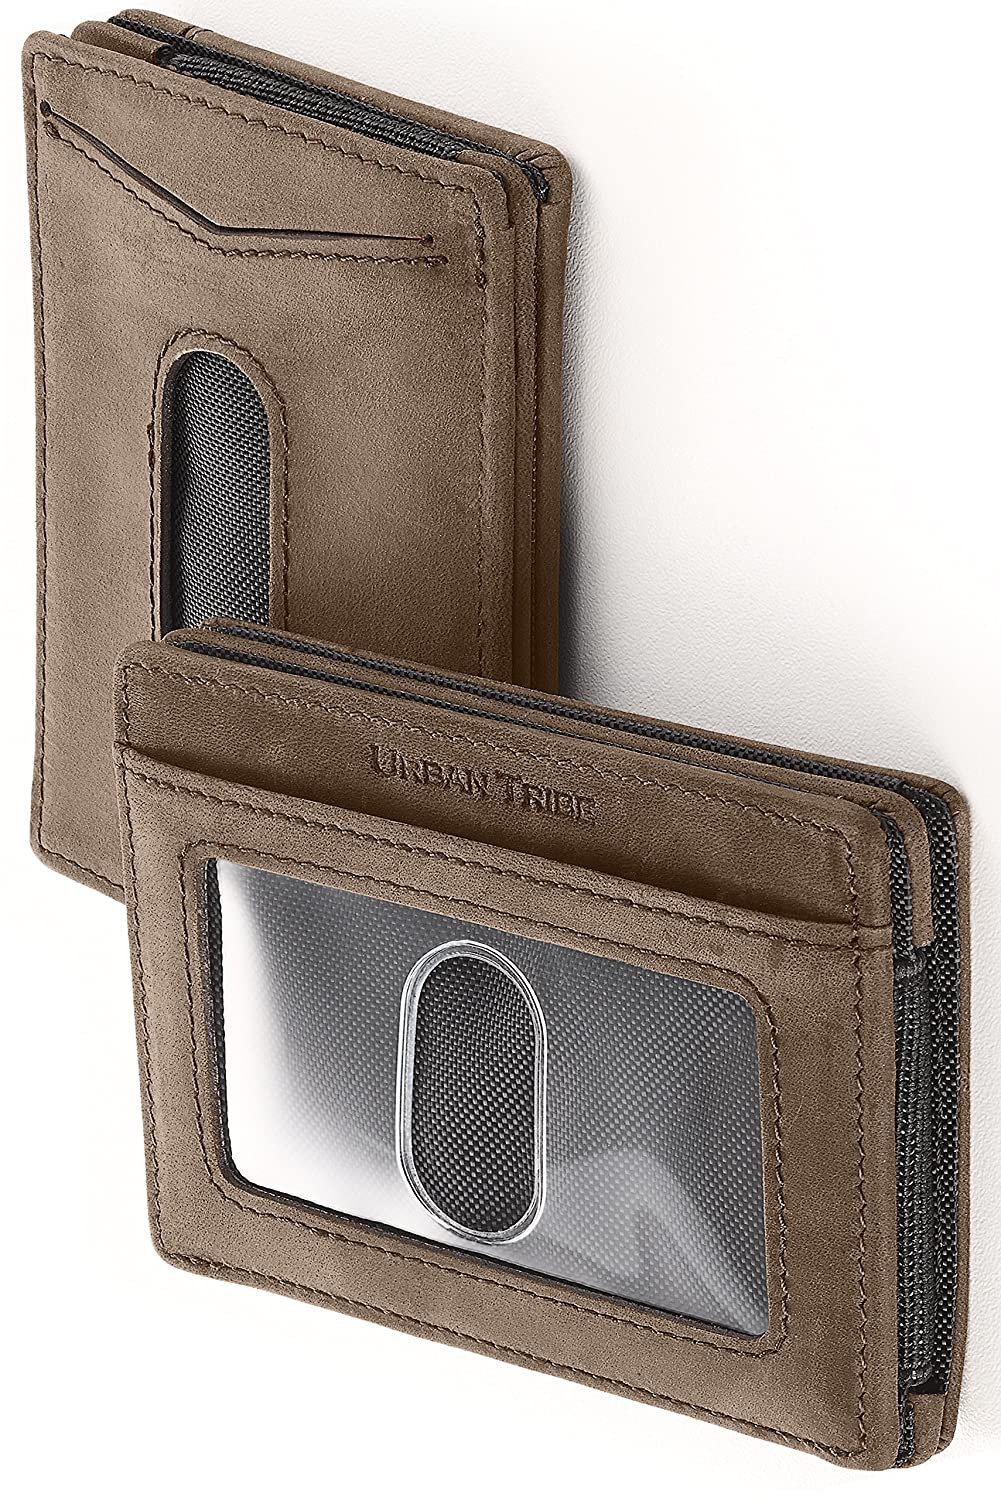 ca6dcf22b8f Compact RFID Card Sleeve Wallet Premium Leather Money Clip Card Holder 10  Cards